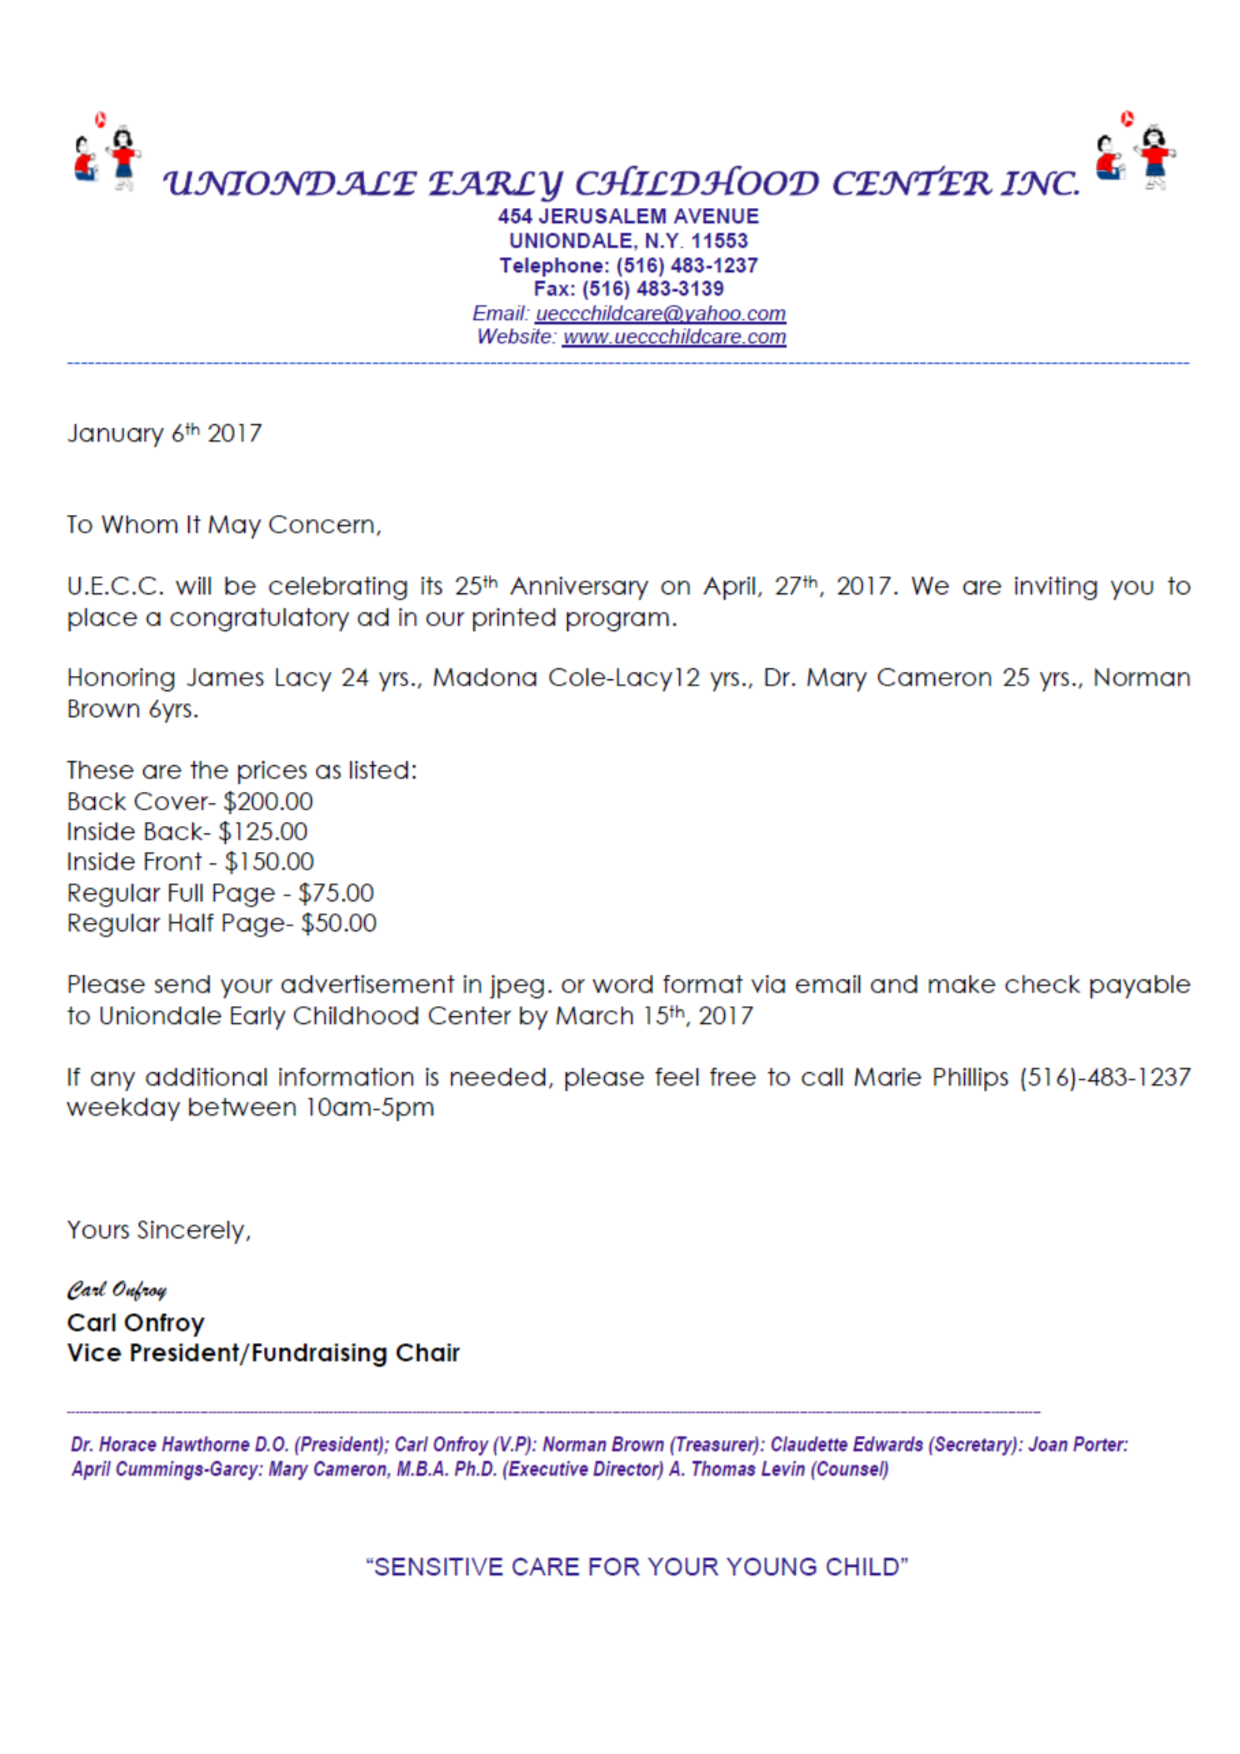 uecc-25th-anniversary-dinner-purchase-journal-ad